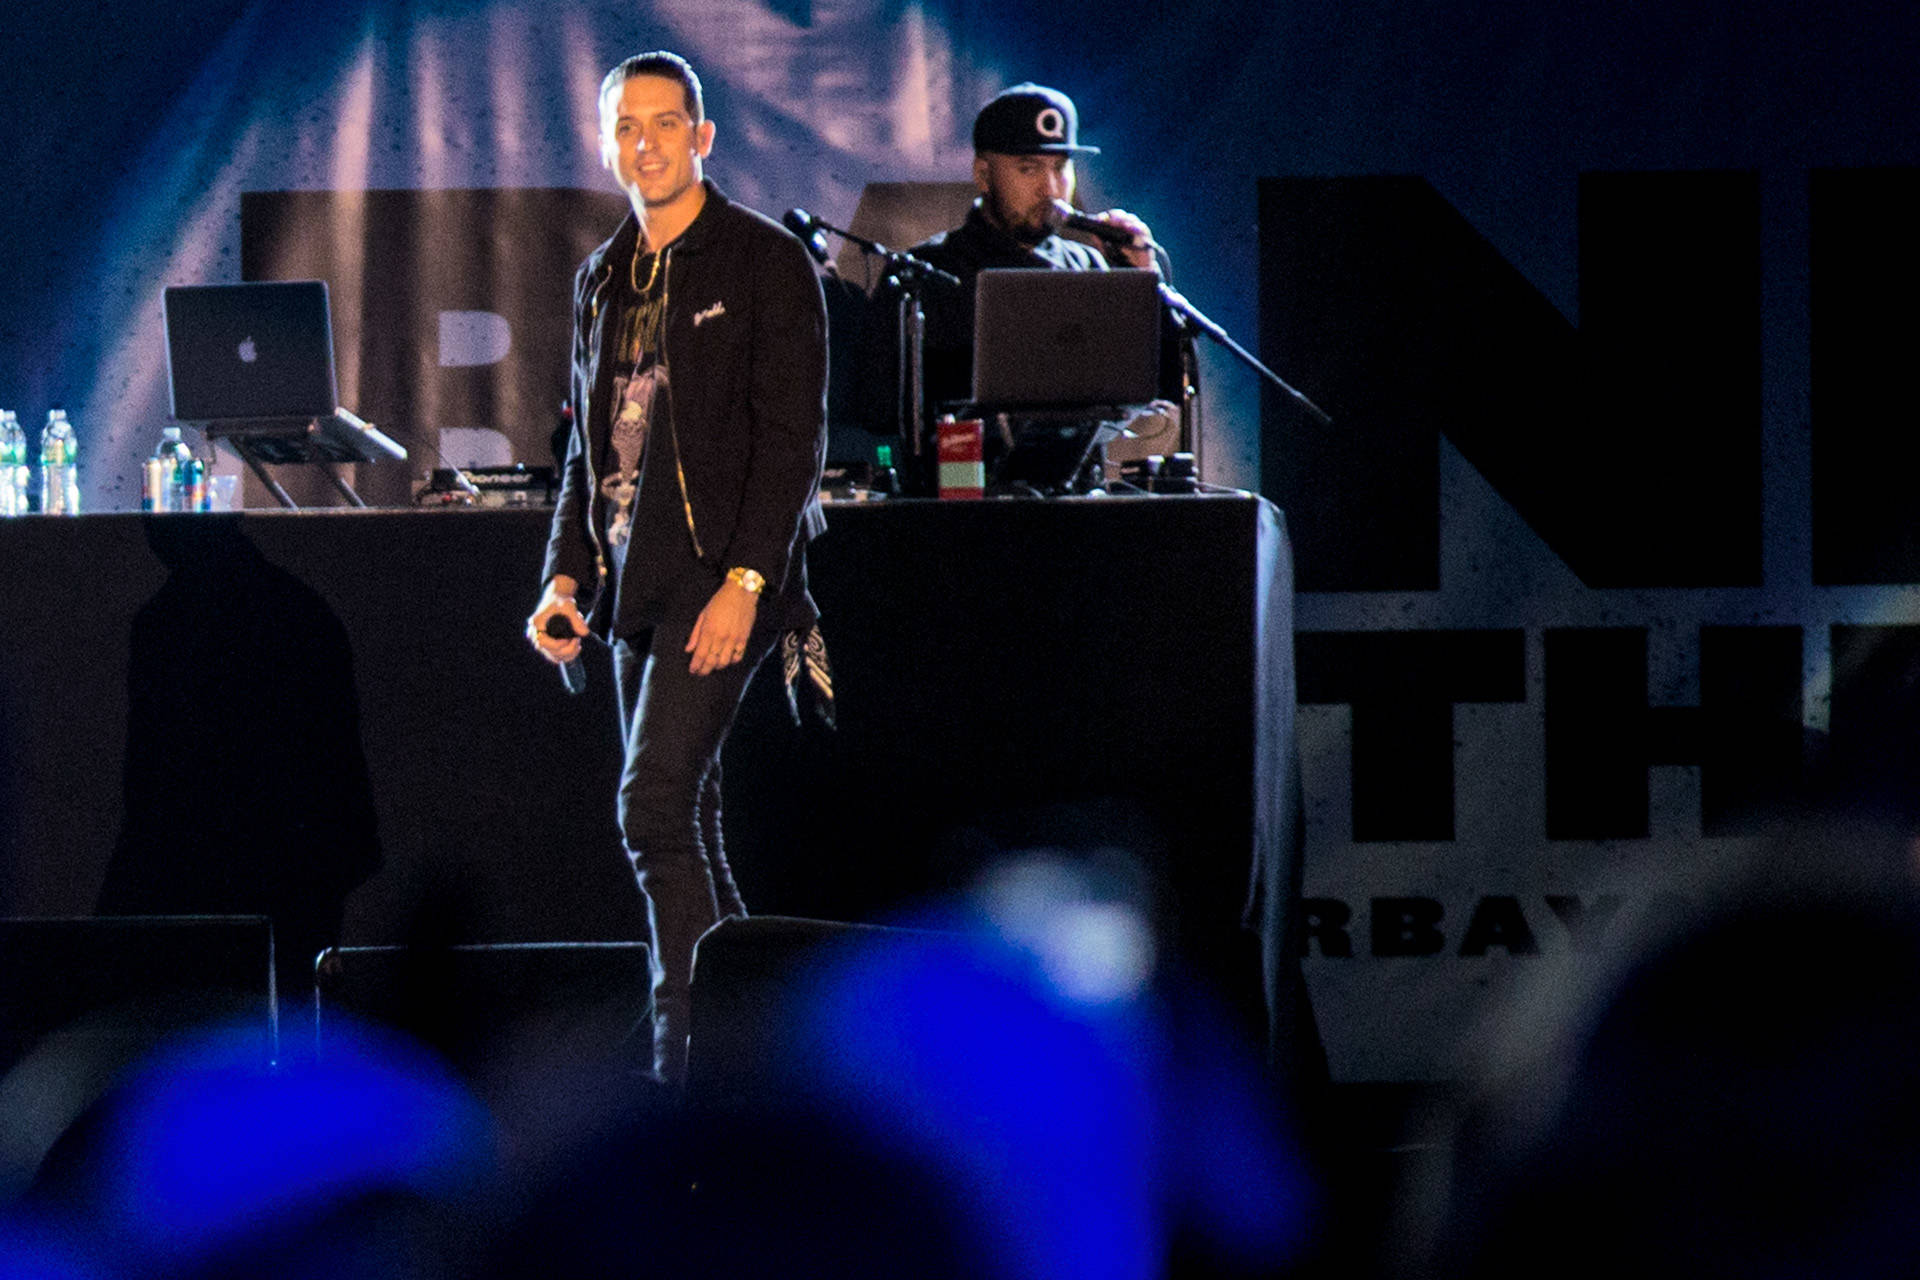 G-Eazy plays Band Together Bay Area, a benefit concert for North Bay Fire relief at AT&T Park on Thursday, November 9.